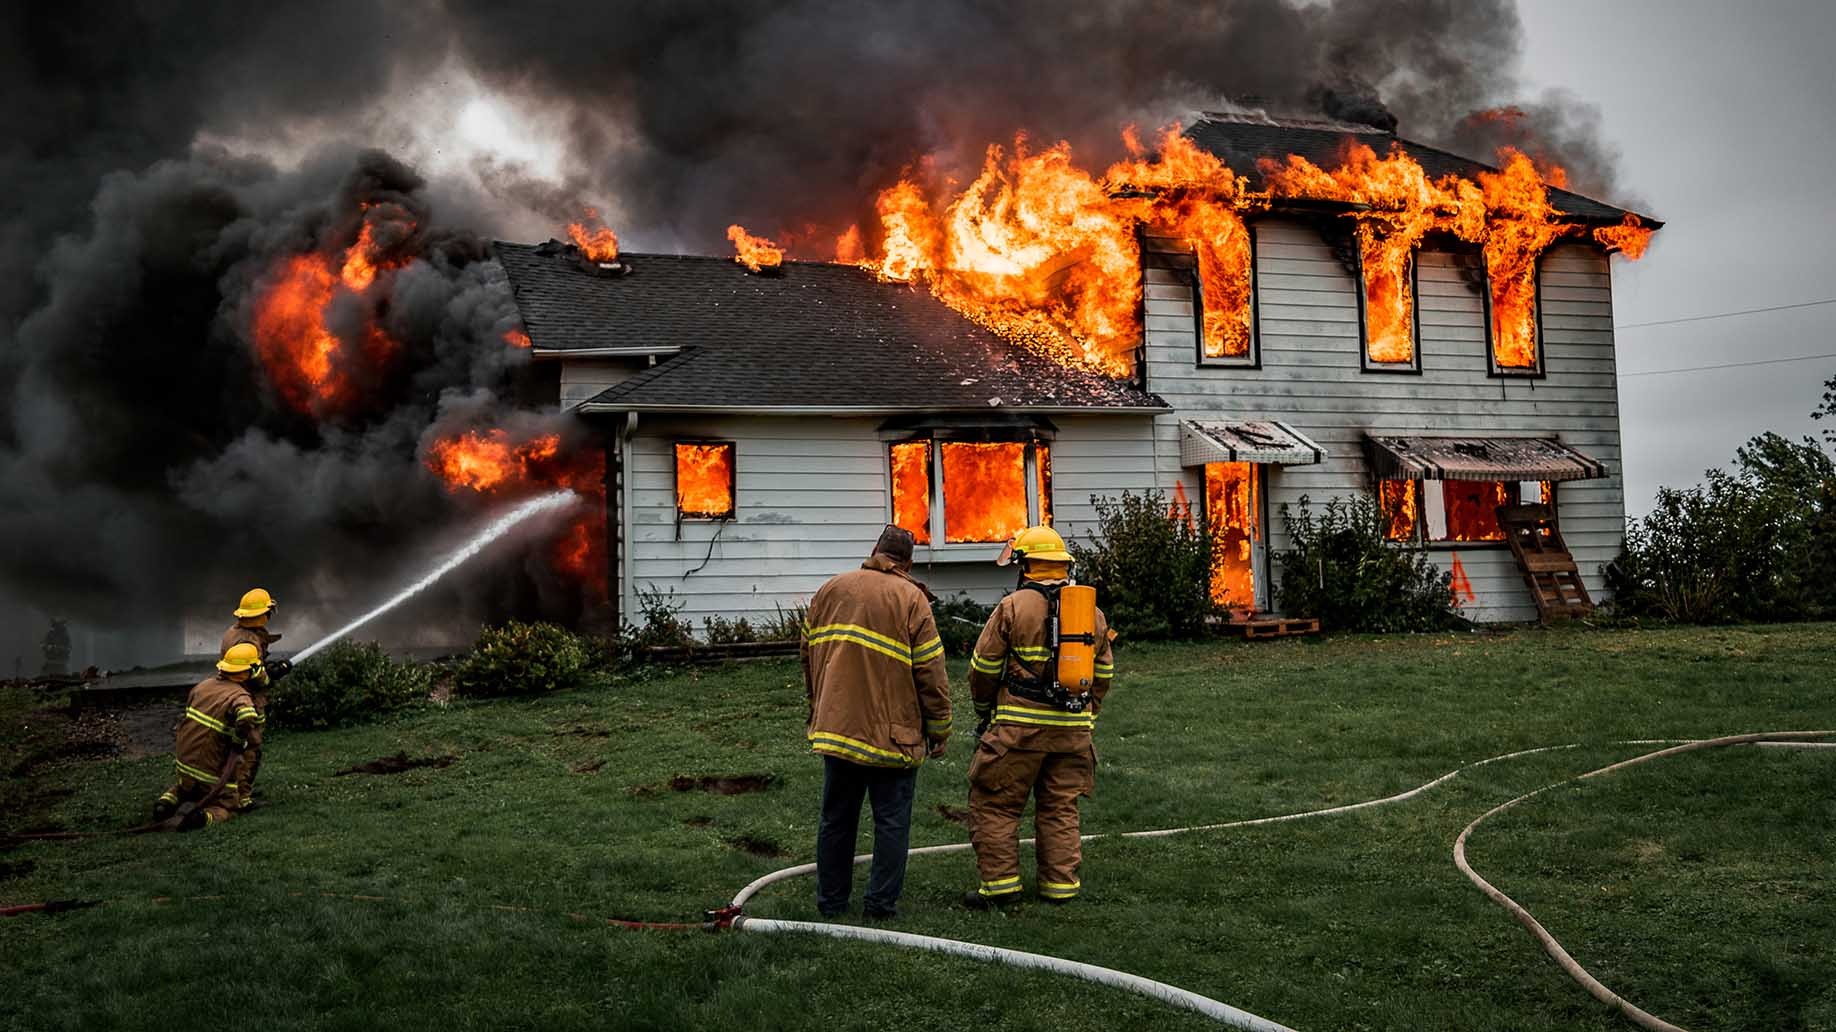 Fire Fighters Putting Out House